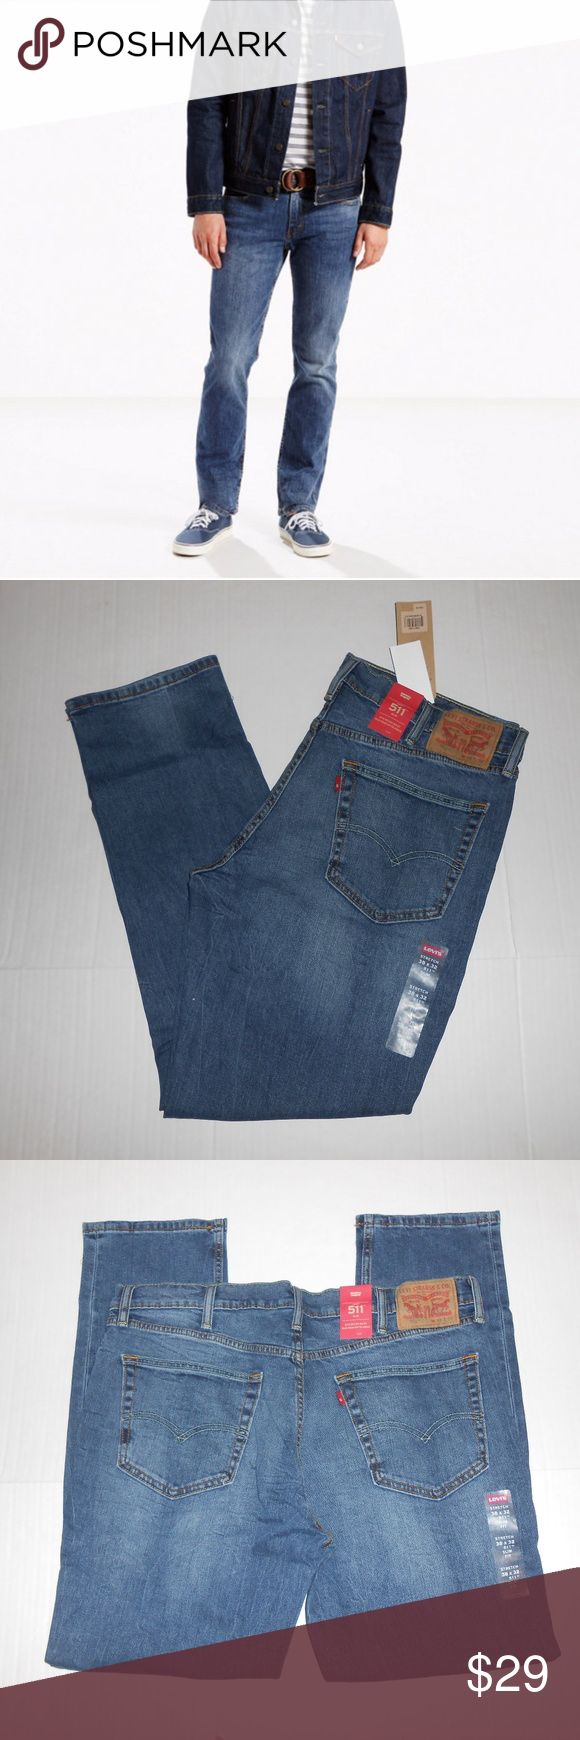 "Levis 511 Slim Fit Sz 38x32 Brand new pair of Levis 511 38x32 slim fit jeans.   Measurements Waist: 19"" across Inseam: 30.5"" Levi's Jeans Slim"